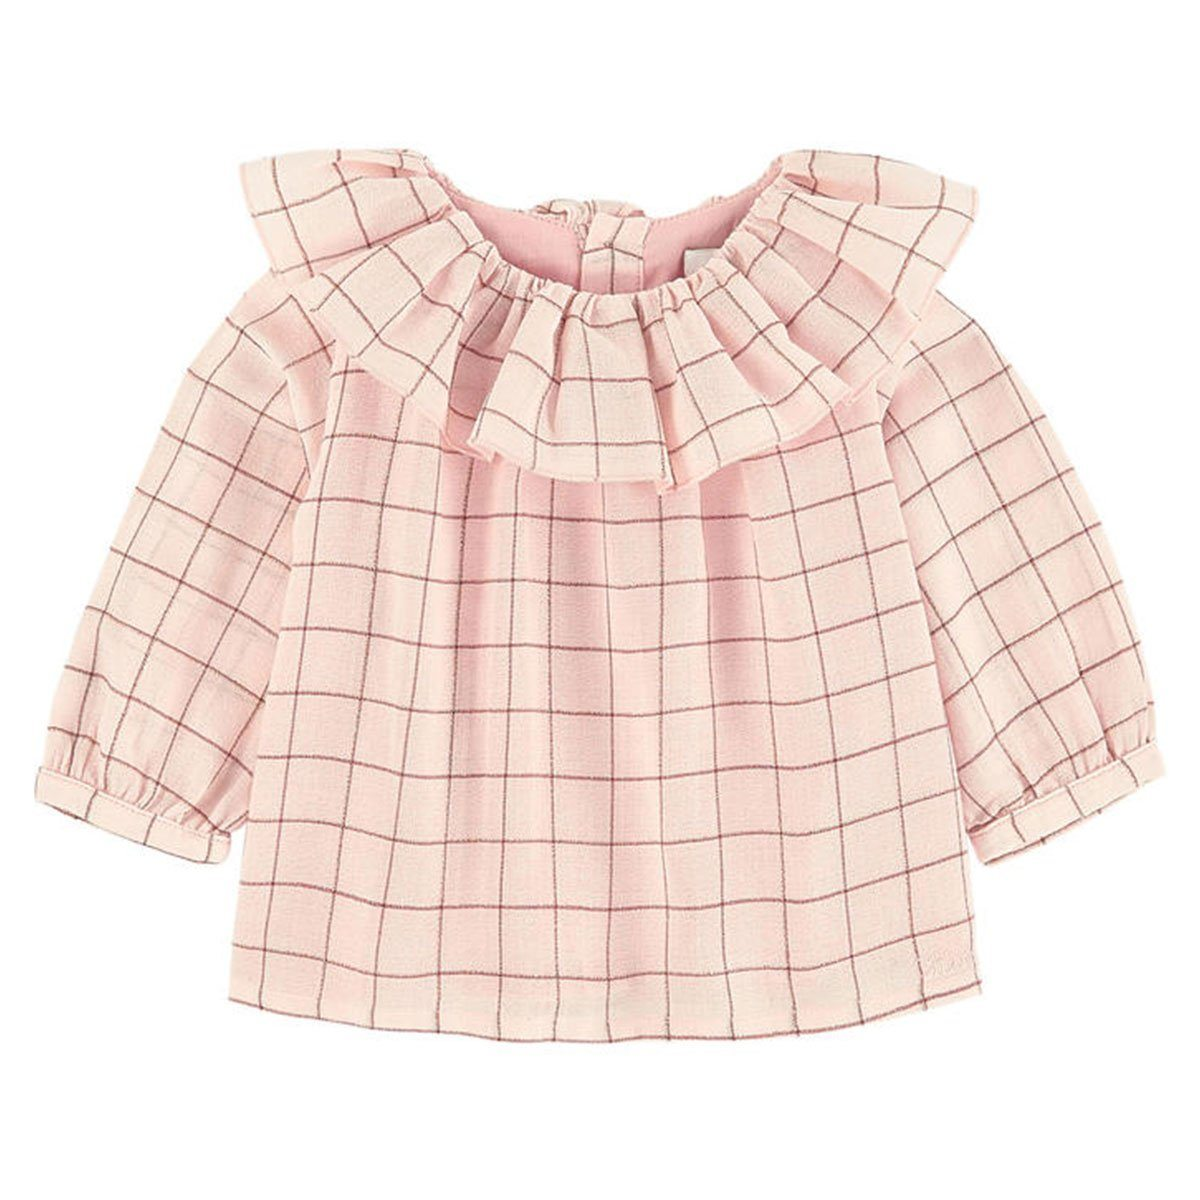 Chloe - Blouse/Shirt For Girls, Light Beige